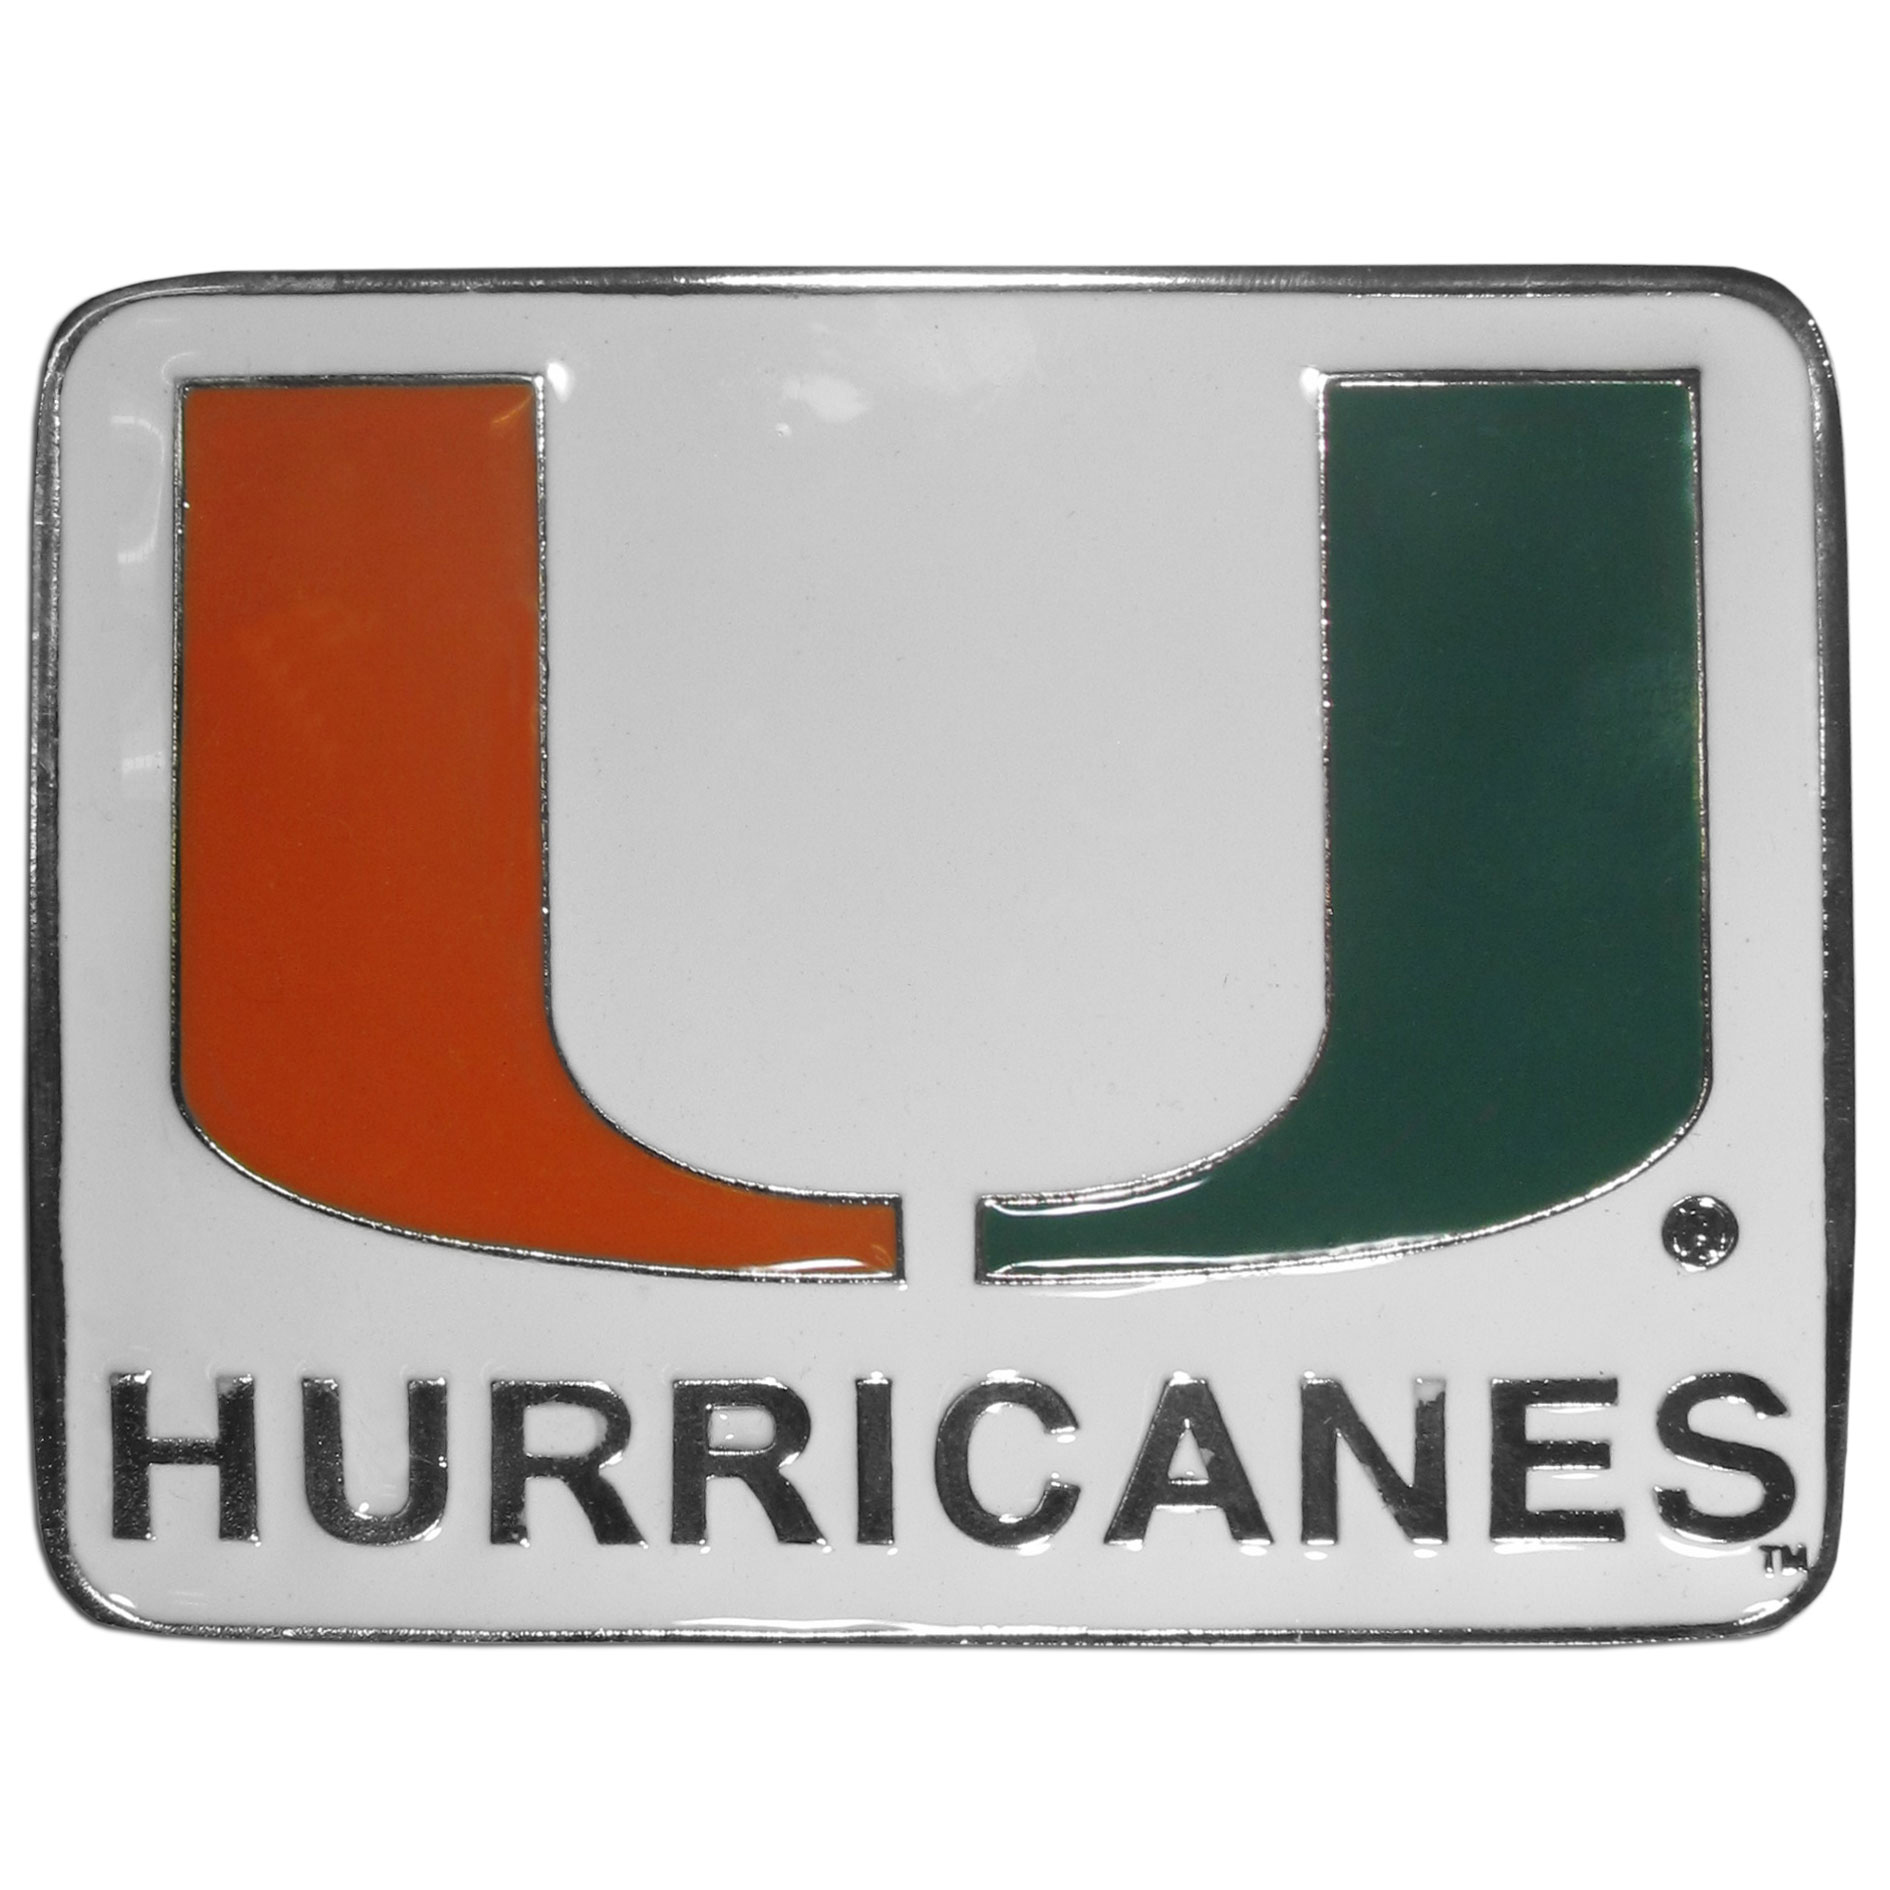 "Miami Hurricanes Collegiate Hitch Cover - Miami Hurricanes collegiate hitch cover is a durable and attractive way to show off your school spirit. The Miami Hurricanes Collegiate Hitch Cover fits a 2"" hitch receiver. Thank you for shopping with CrazedOutSports.com"